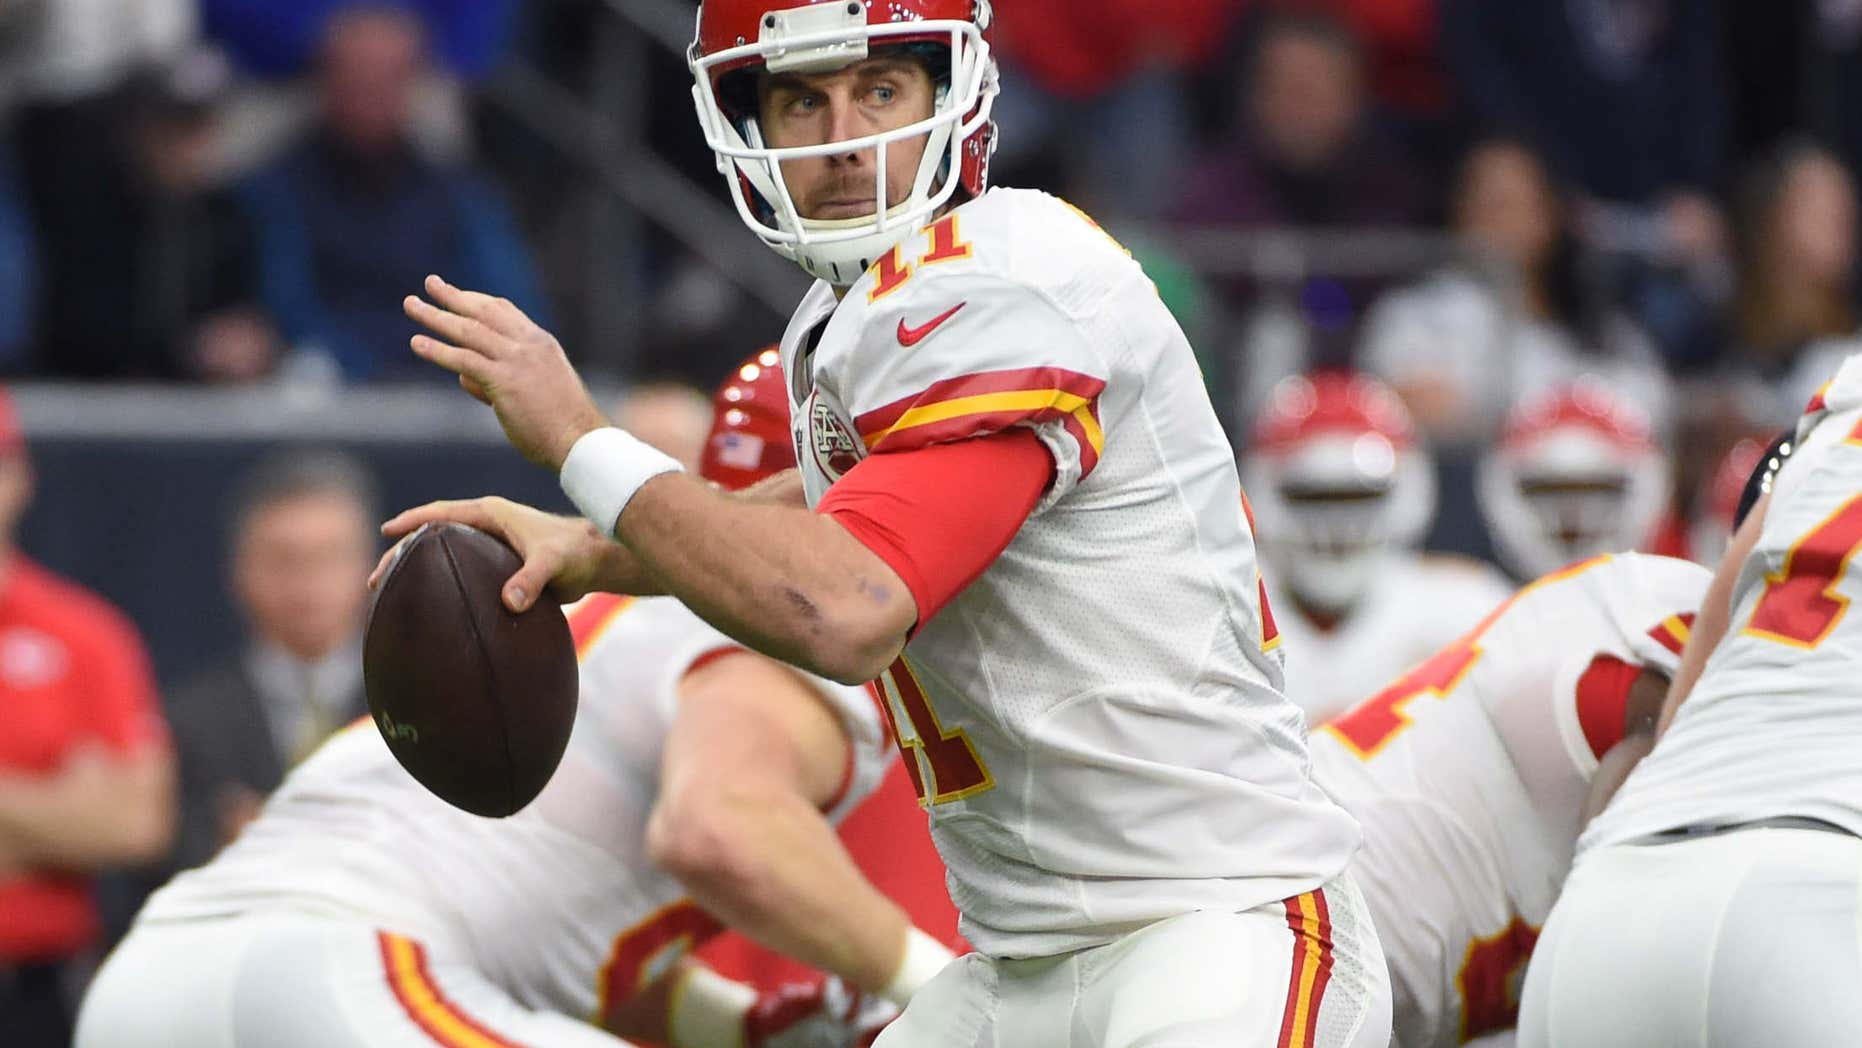 Kansas City Chiefs quarterback Alex Smith (11) looks to throw against the Houston Texans during the first half of an NFL wild-card football game Saturday, Jan. 9, 2016, in Houston.